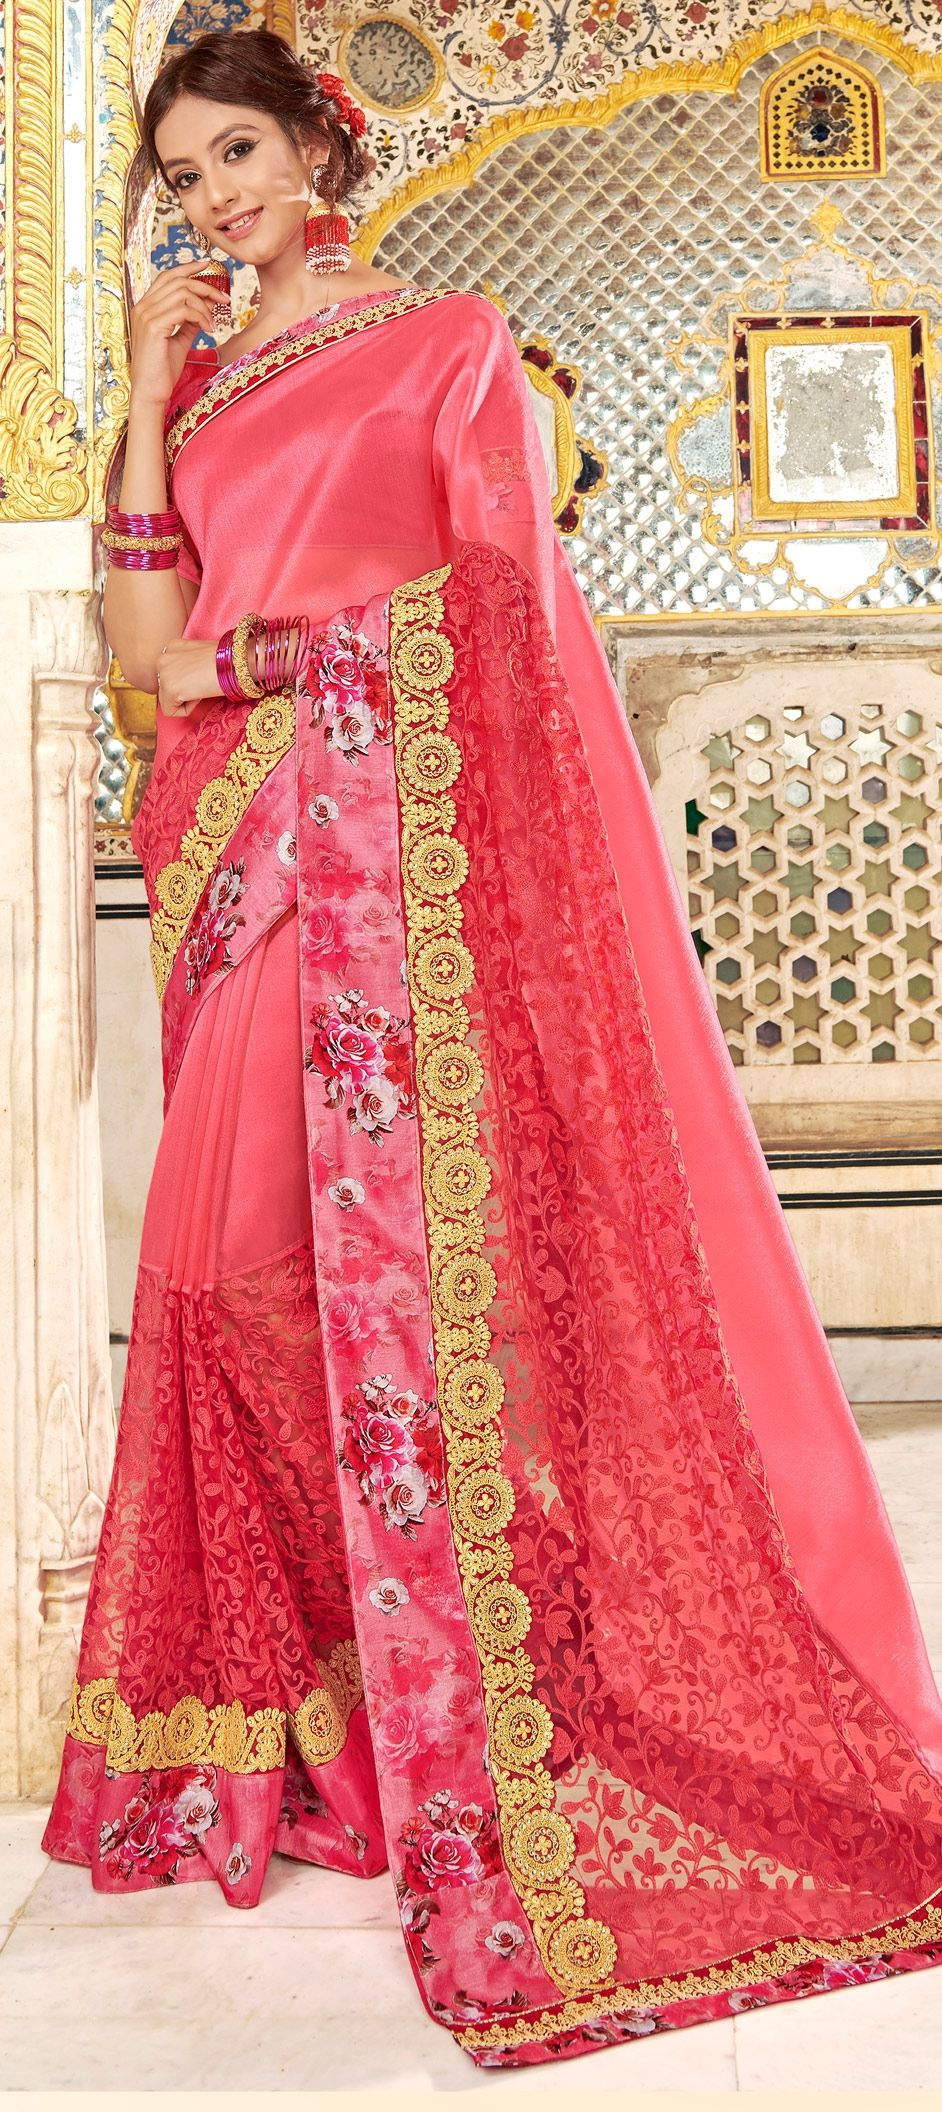 87cbc7919f 1522715: Party Wear Pink and Majenta color Fancy Fabric fabric Saree